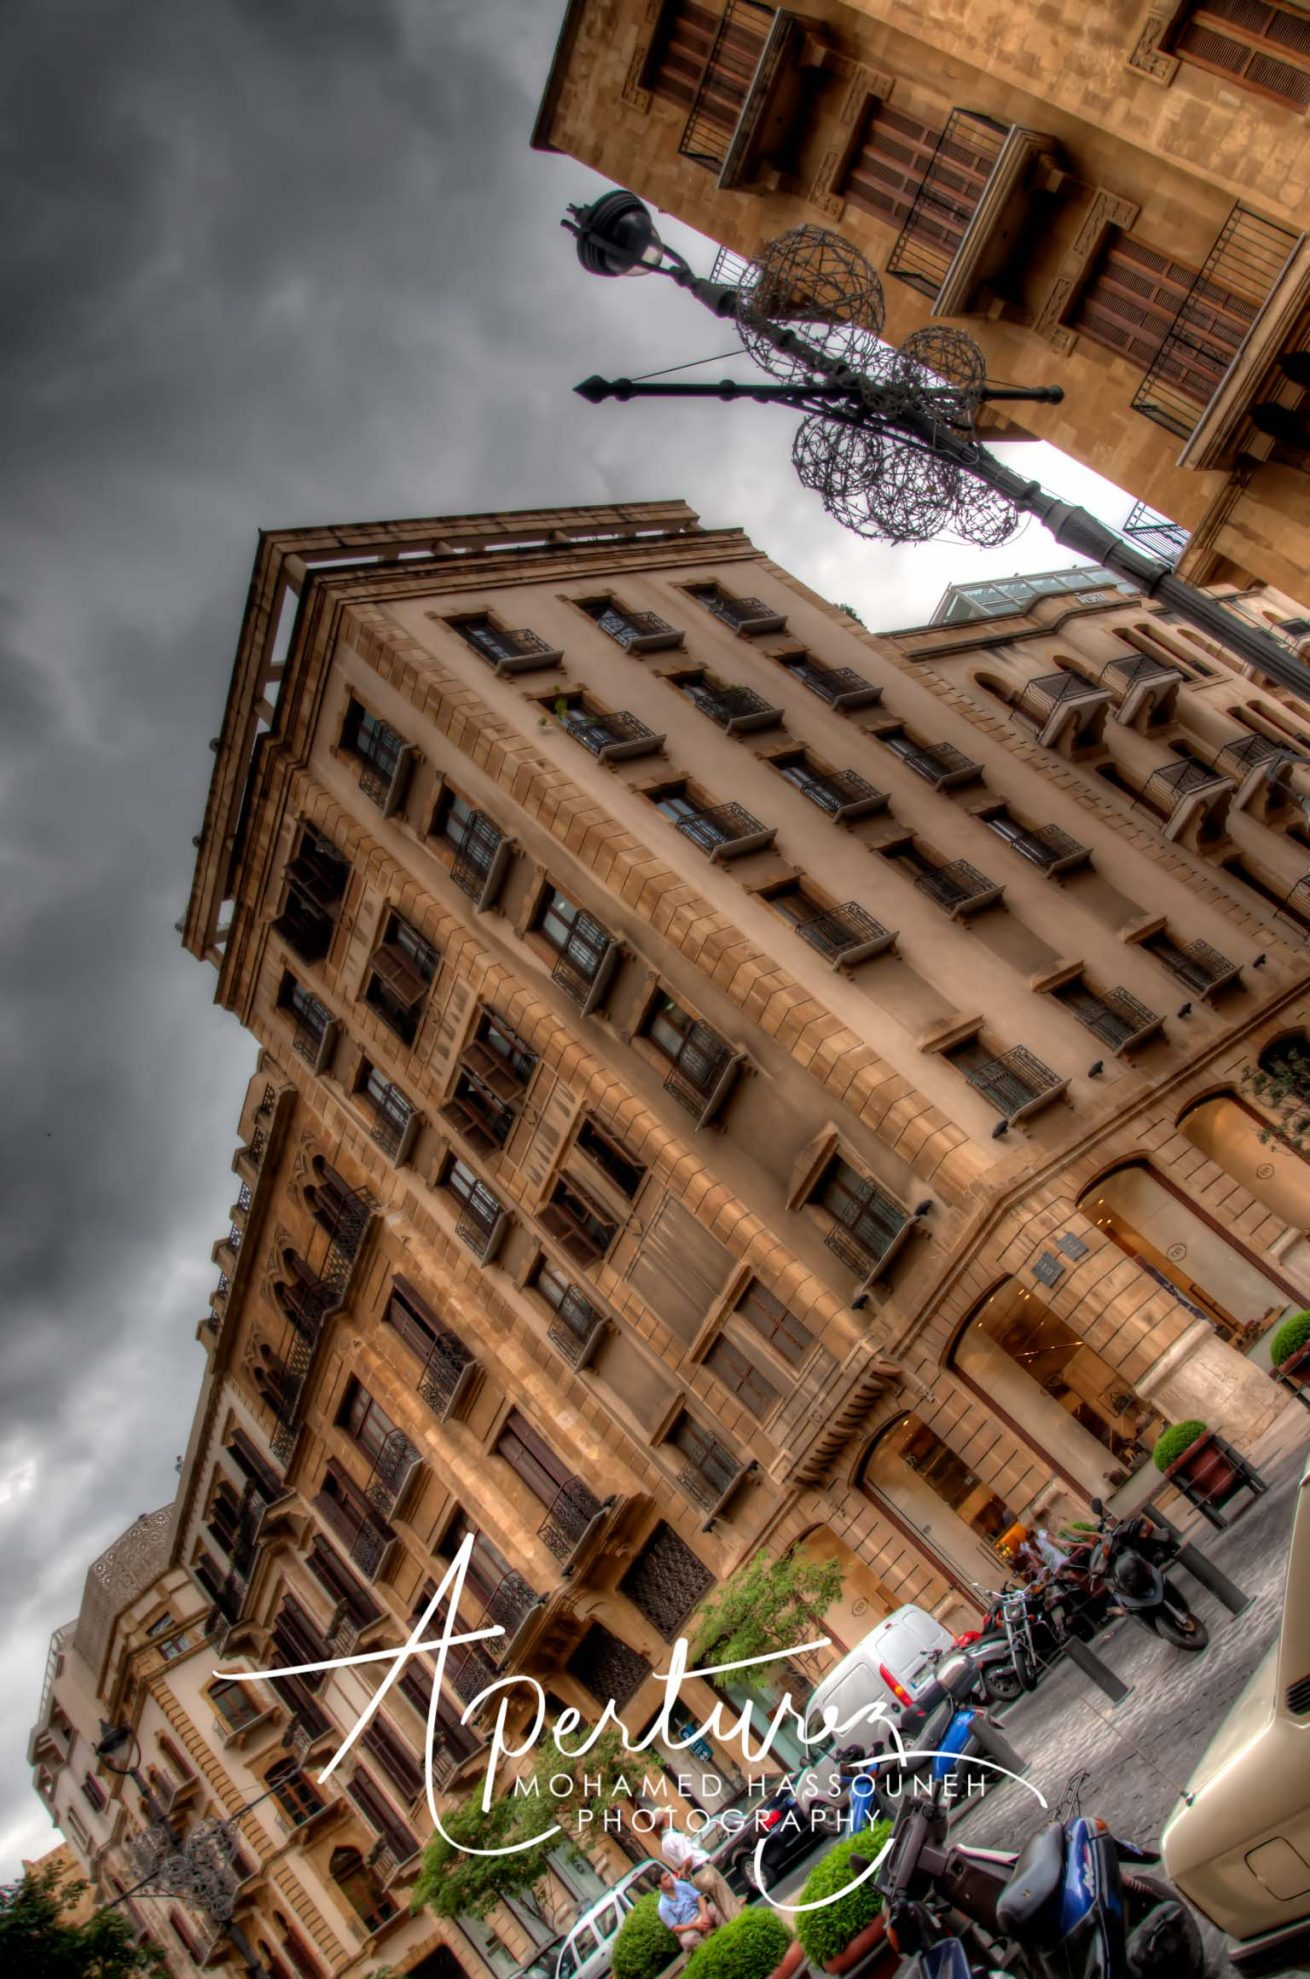 IN MY ANGLE  DOWNTOWN BEIRUT